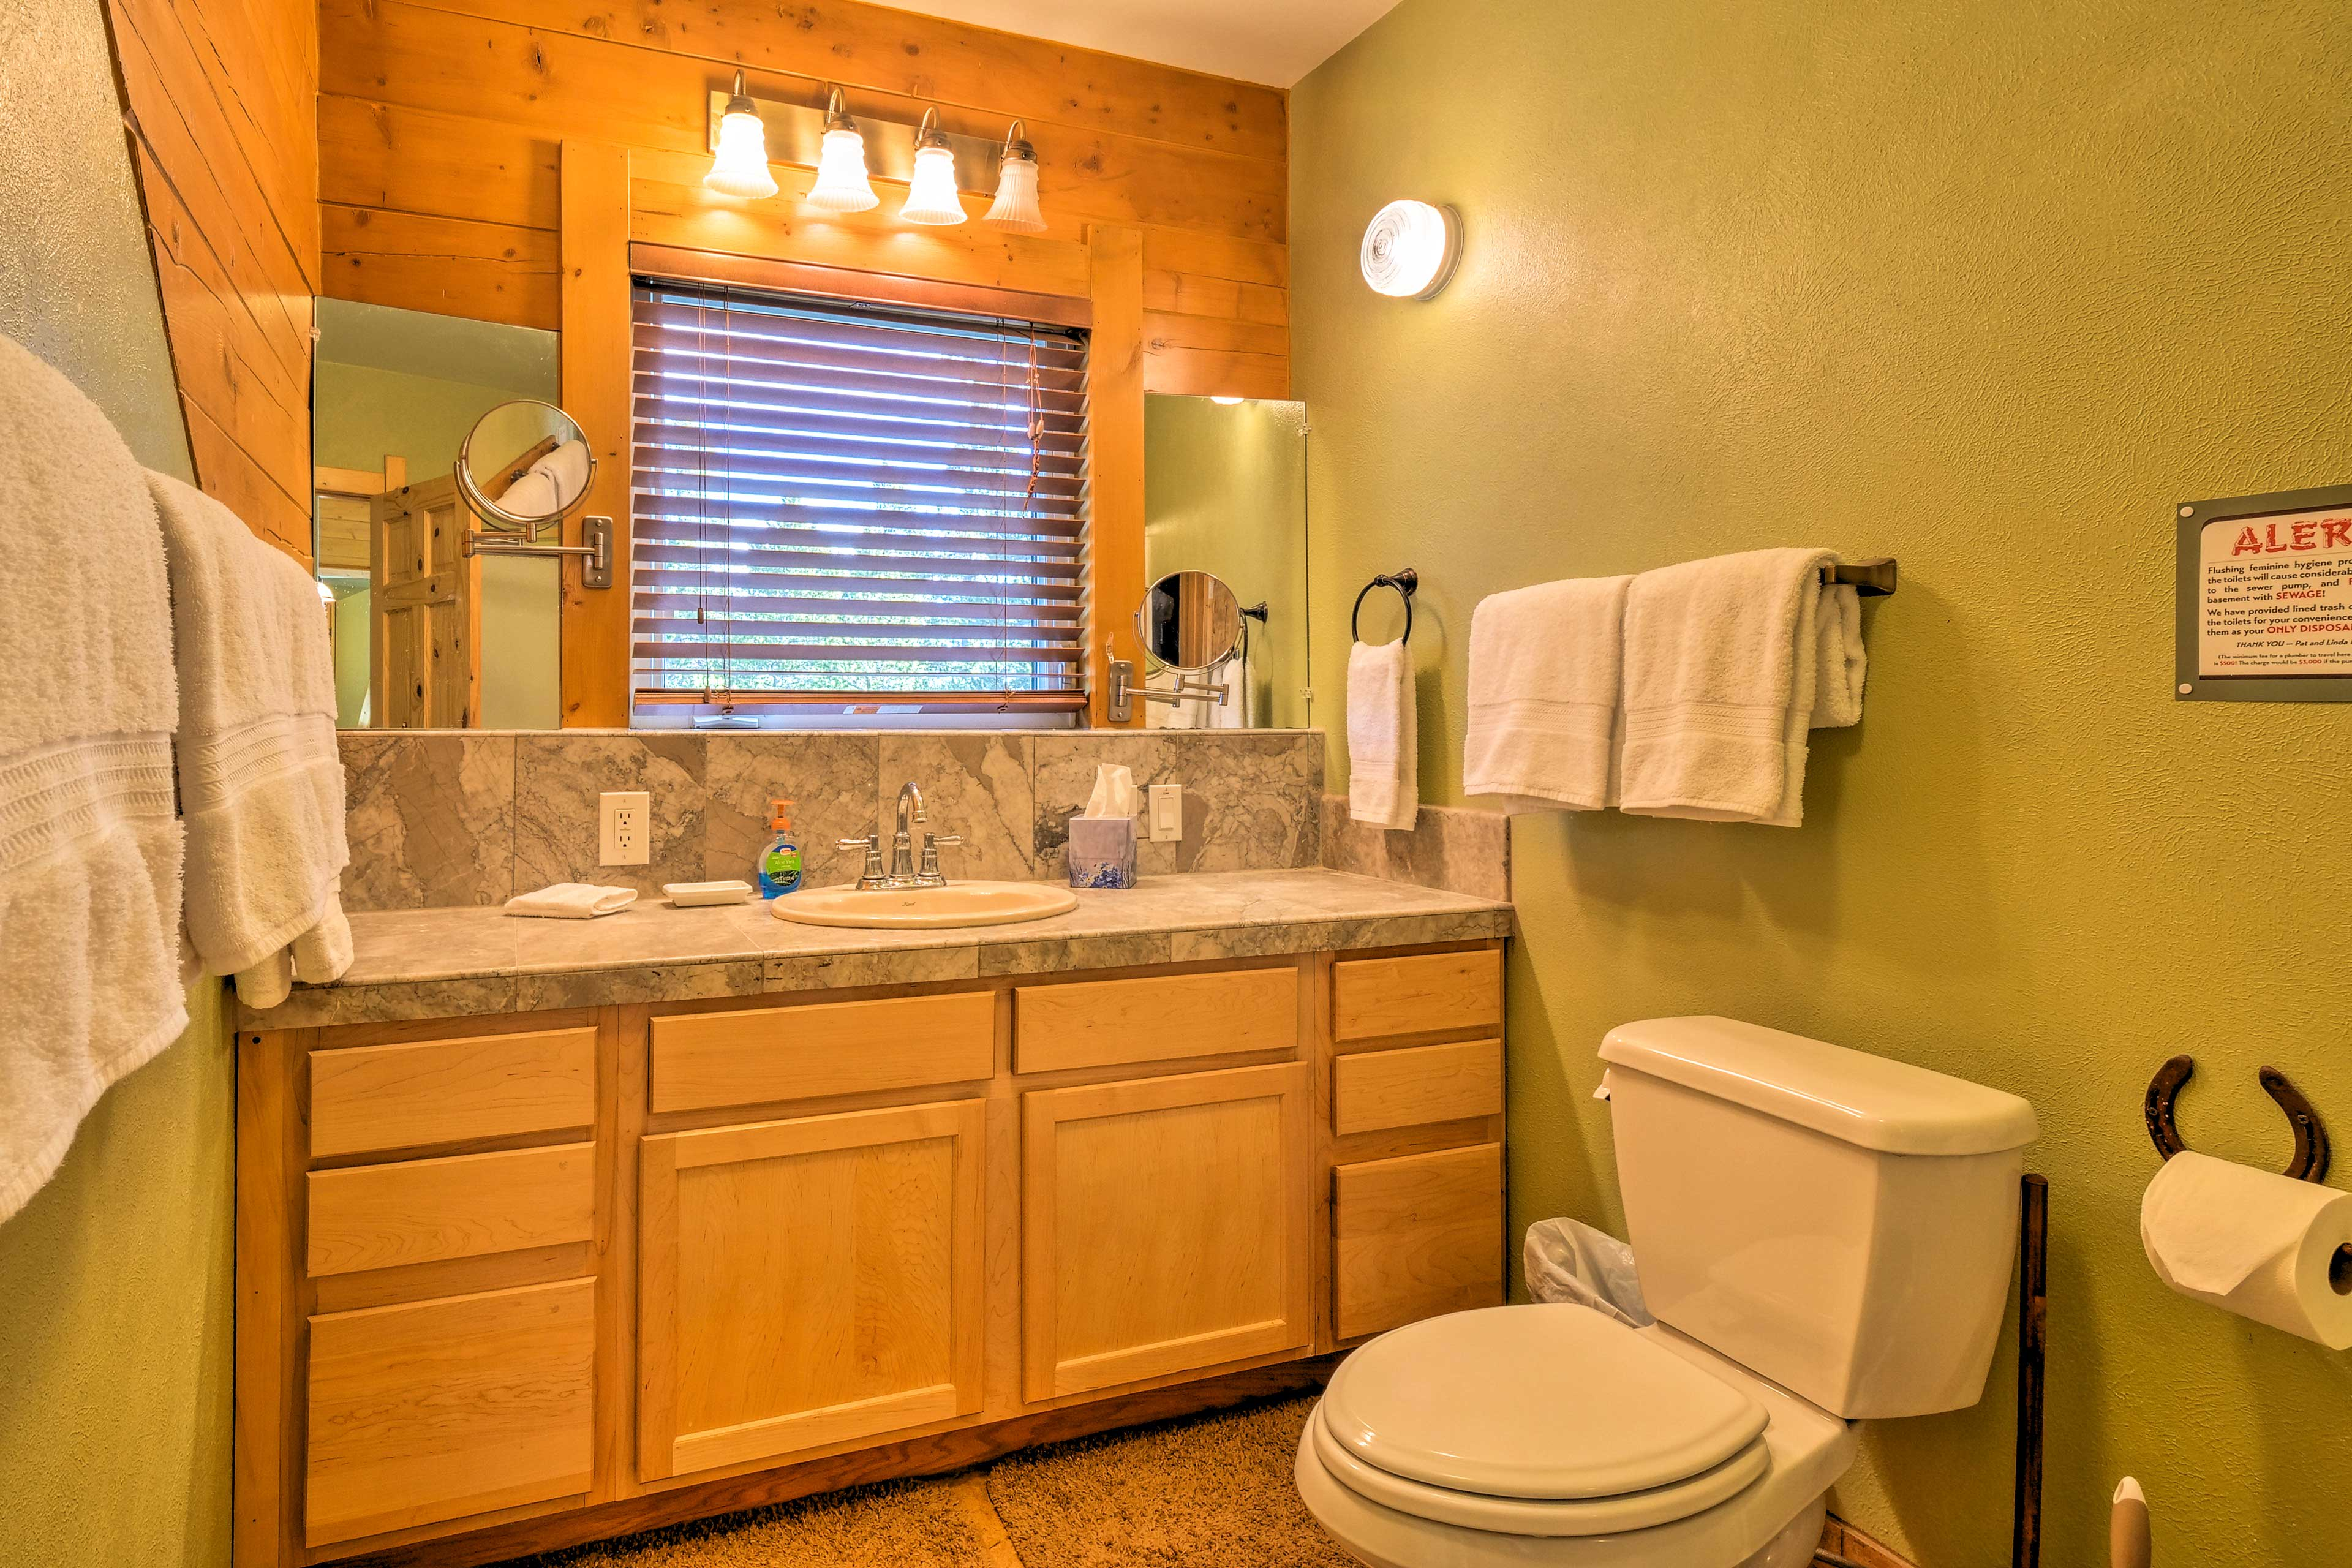 There are 3 full bathrooms located throughout the cabin.